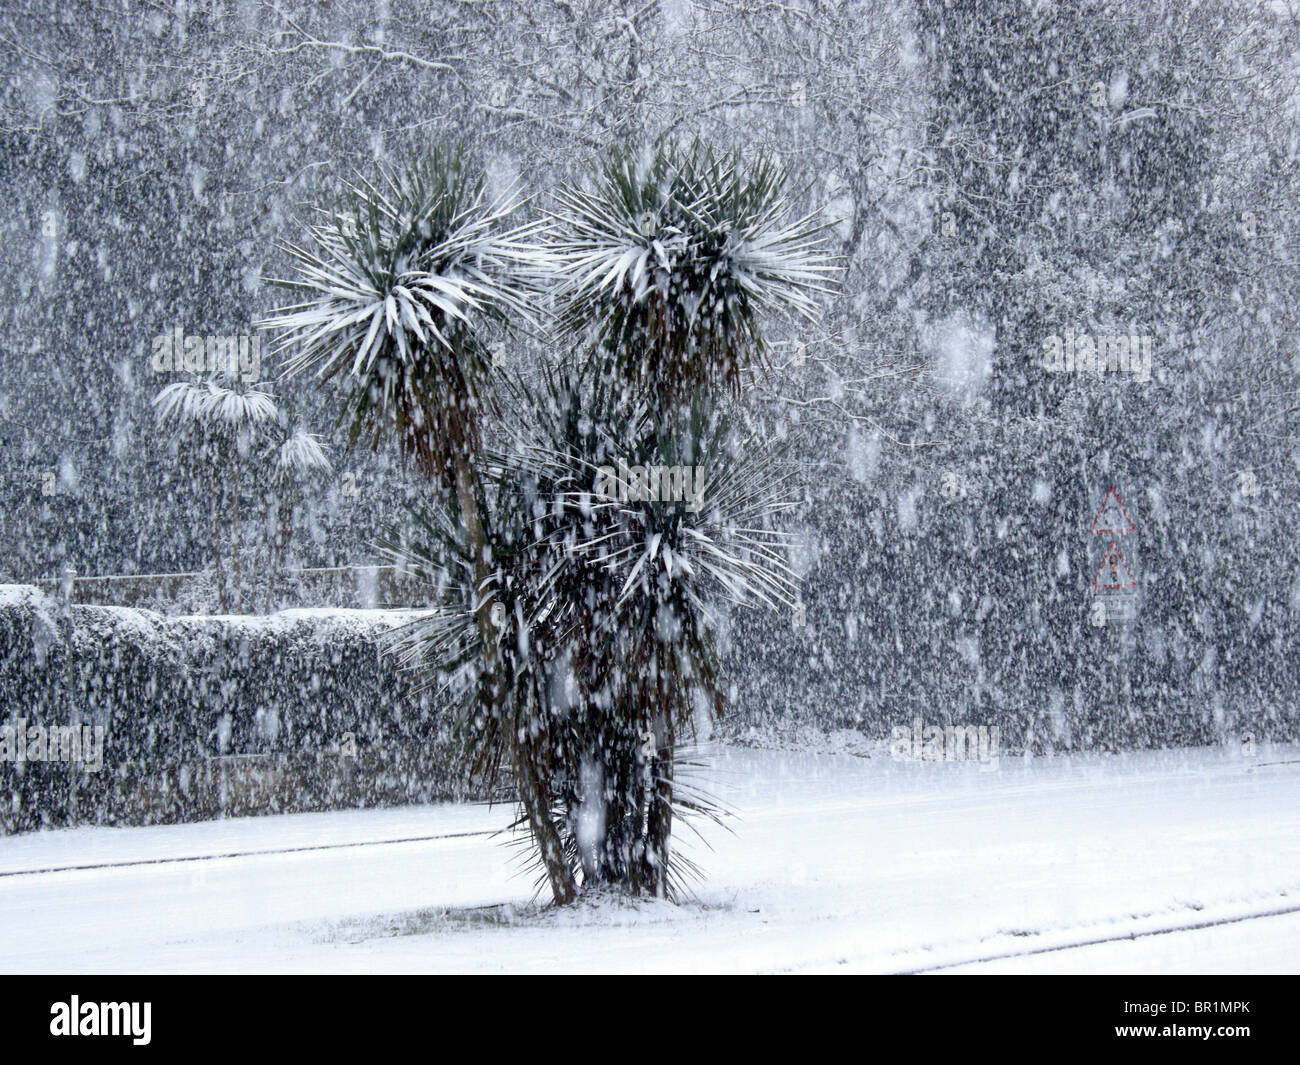 Cornish palm tree in a snow storm - Stock Image